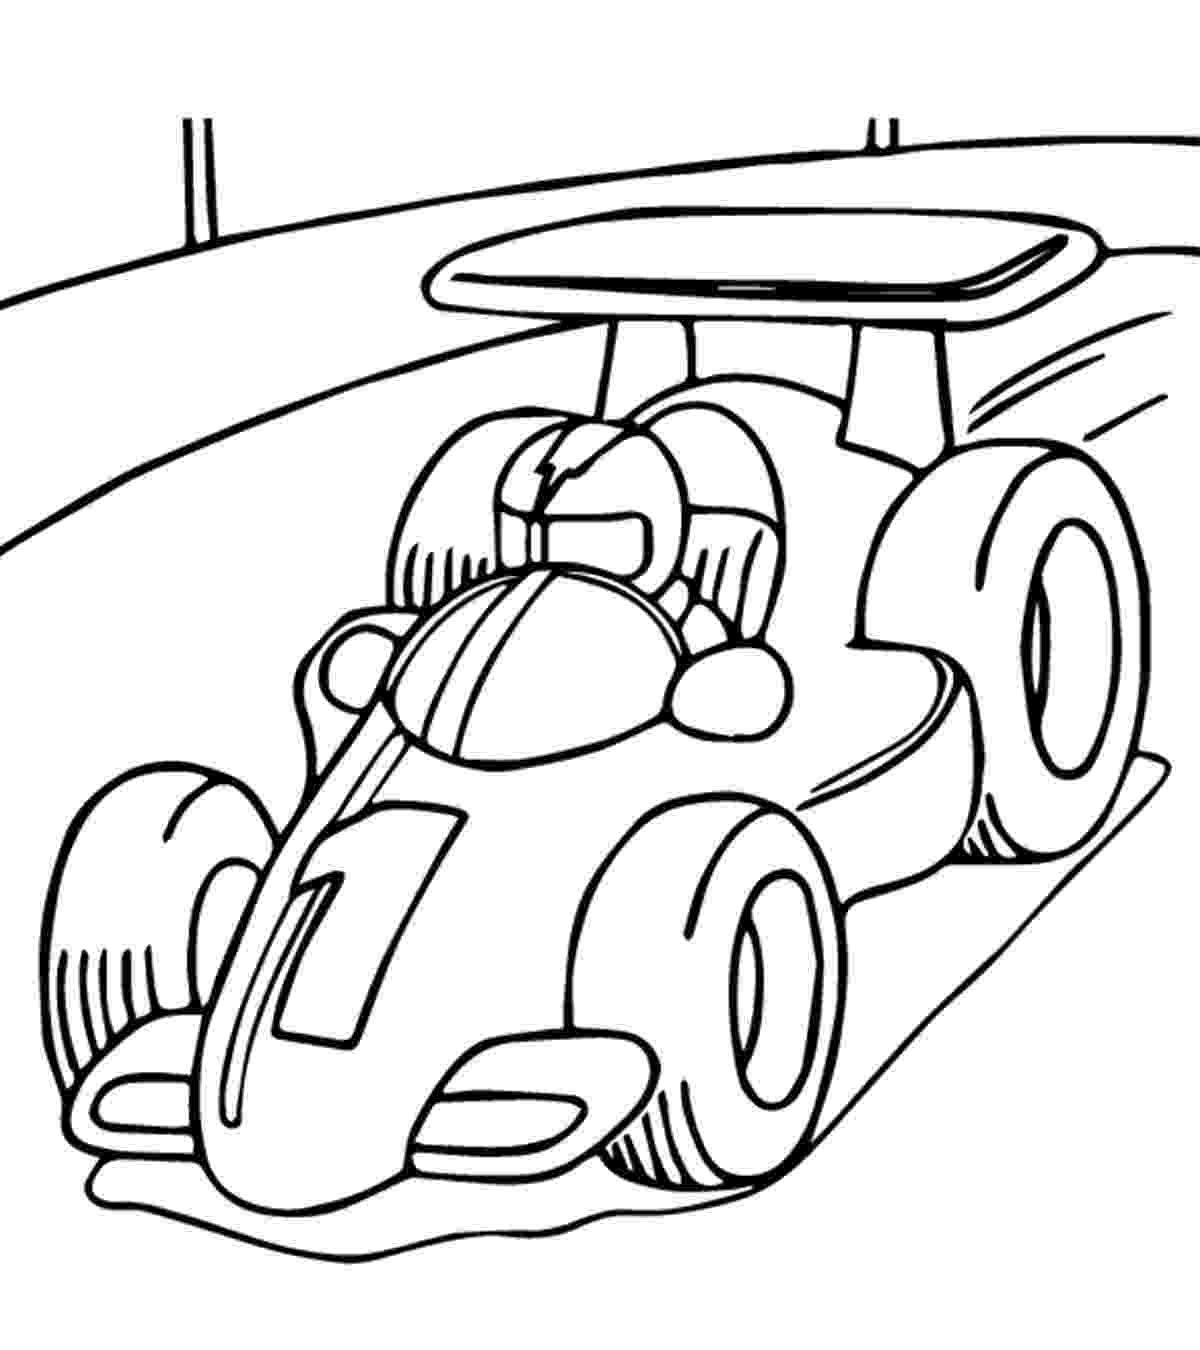 car coloring sheet muscle car coloring pages to download and print for free coloring car sheet